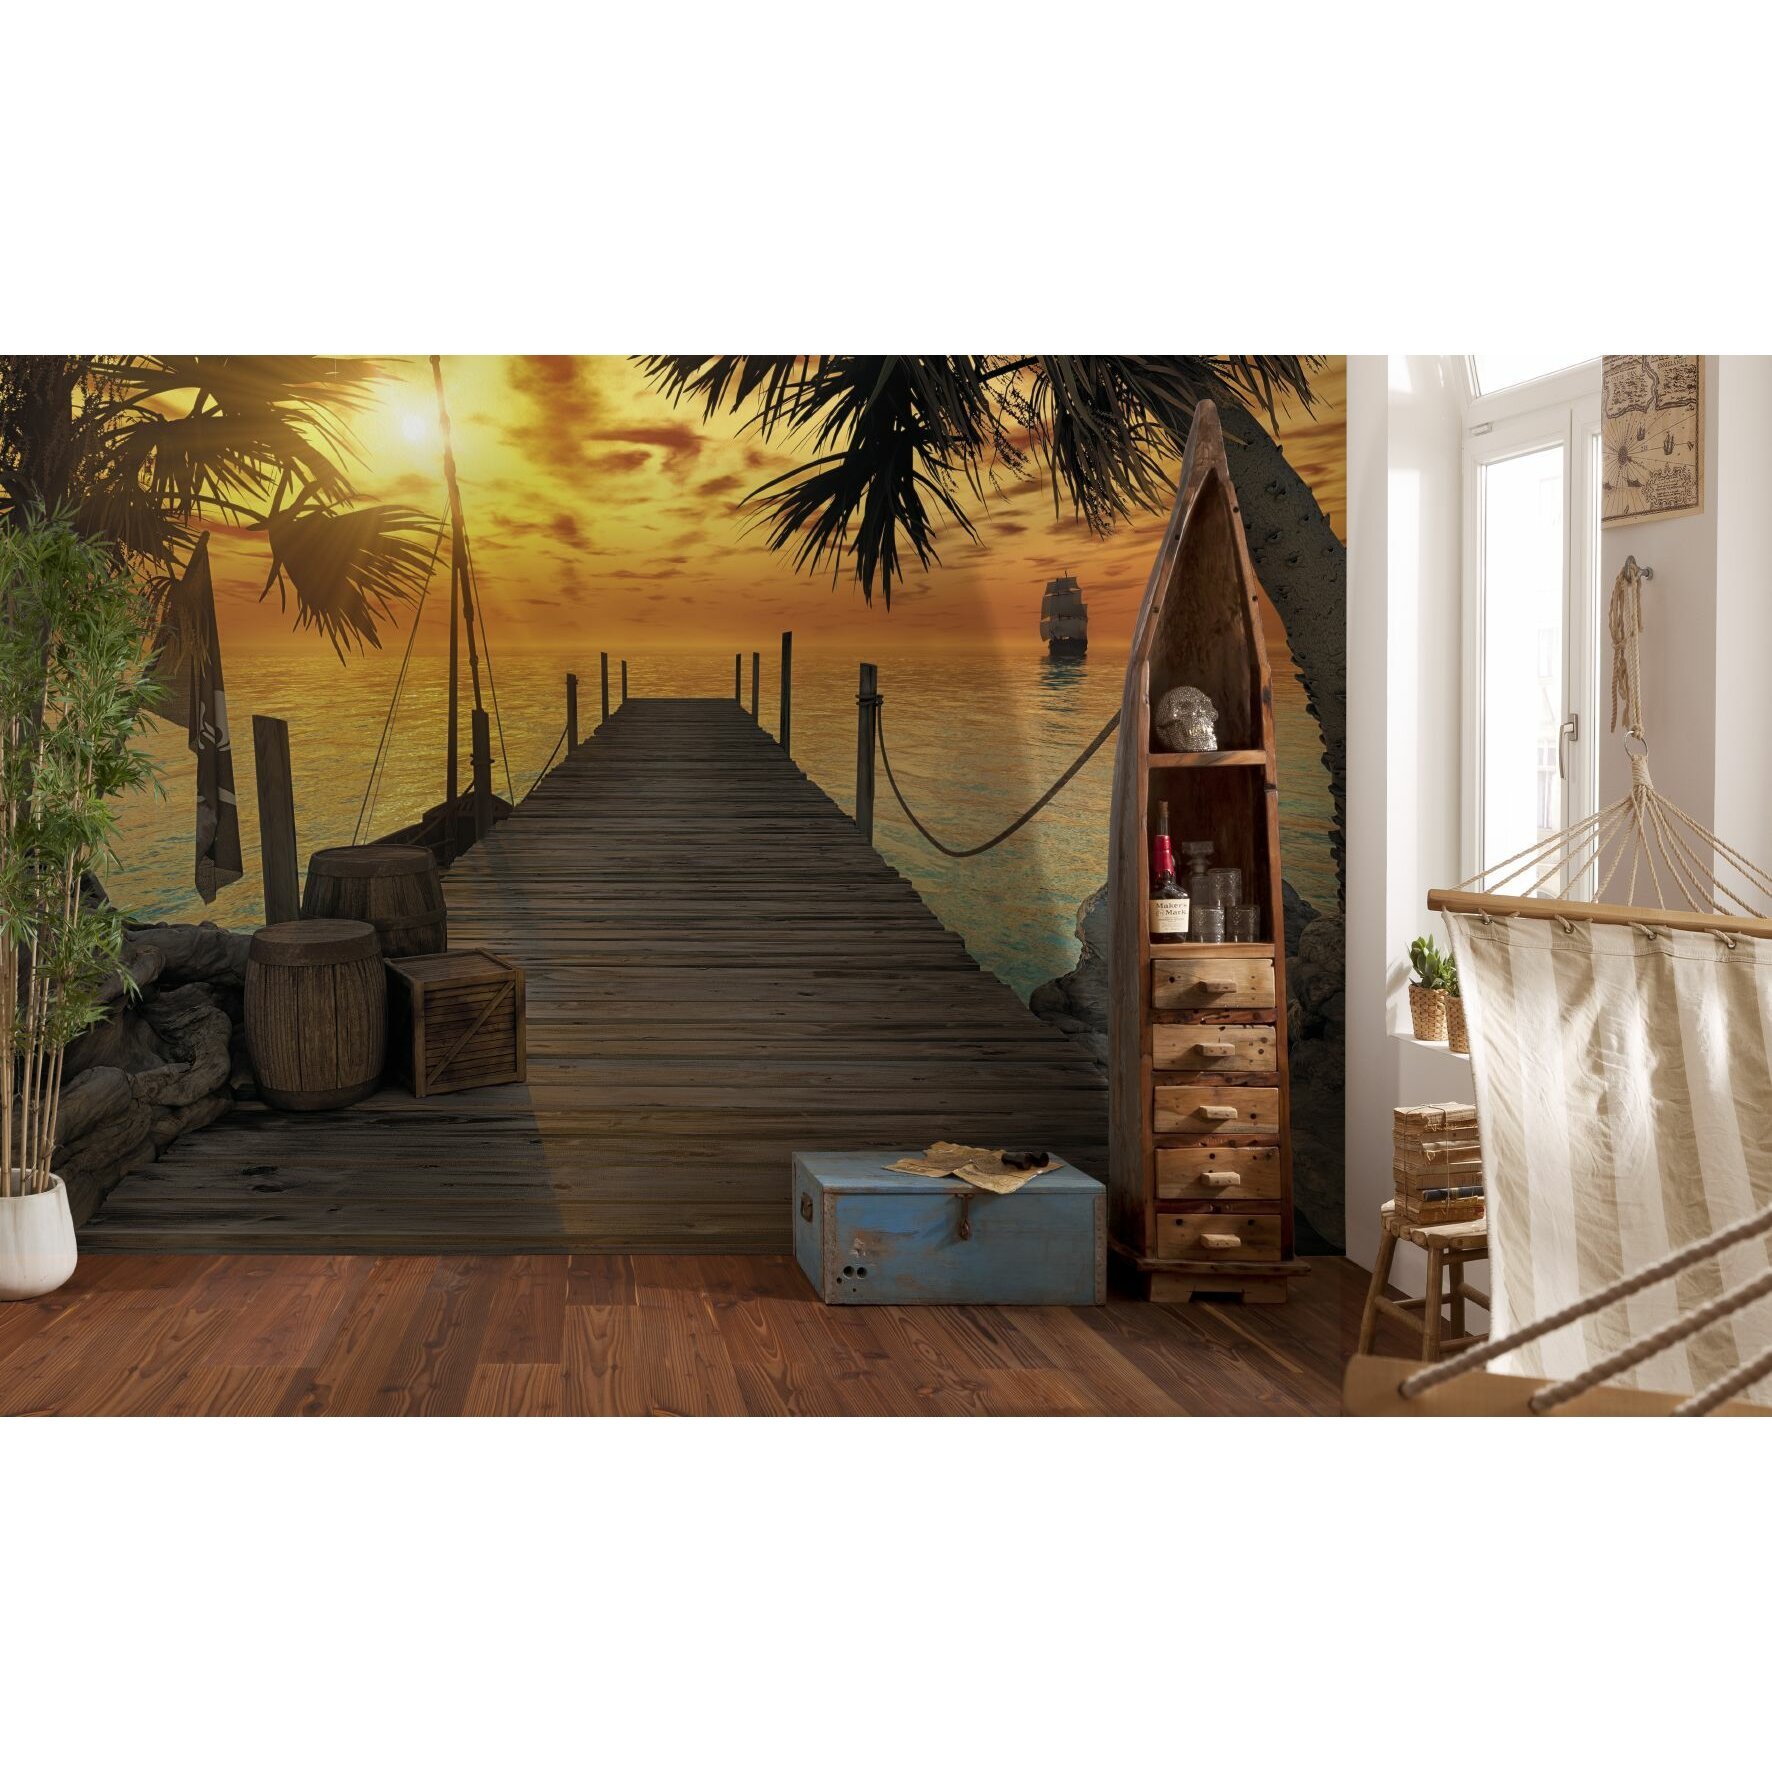 Brewster home fashions komar treasure island dock wall for Brewster home fashions komar wall mural